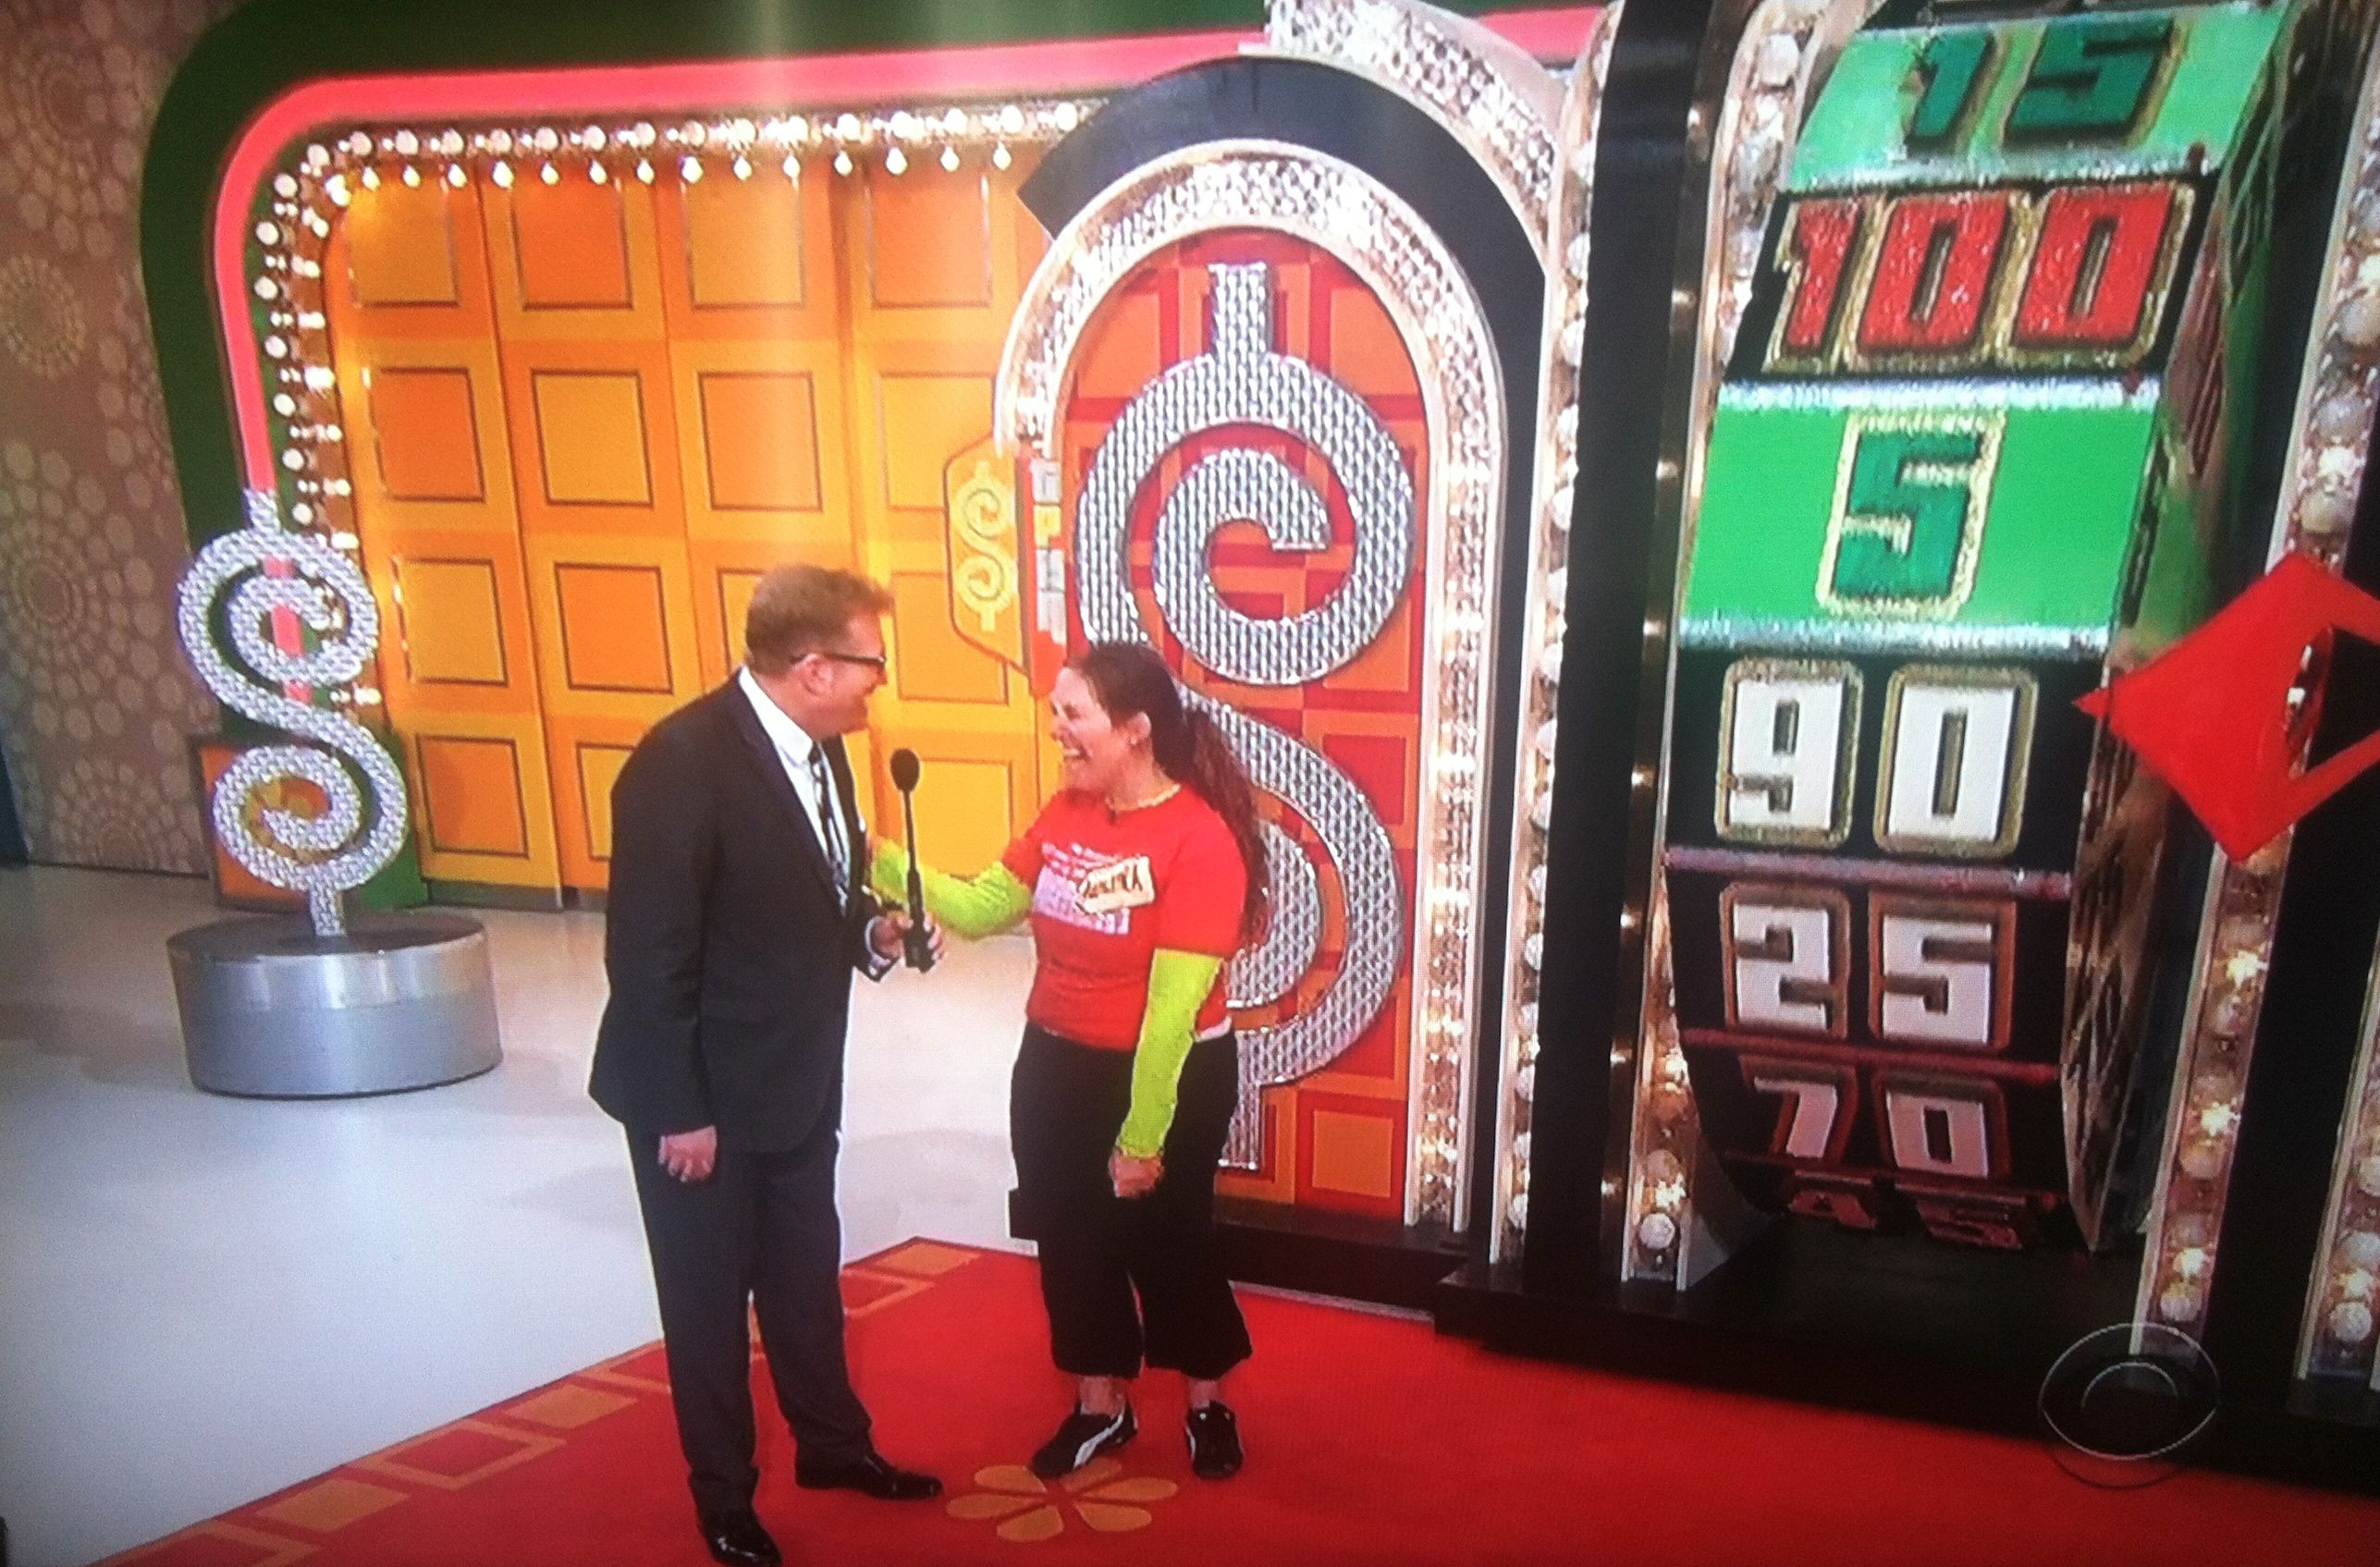 Aurora De Lucia having fun with Drew Carey at The Price is Right wheel